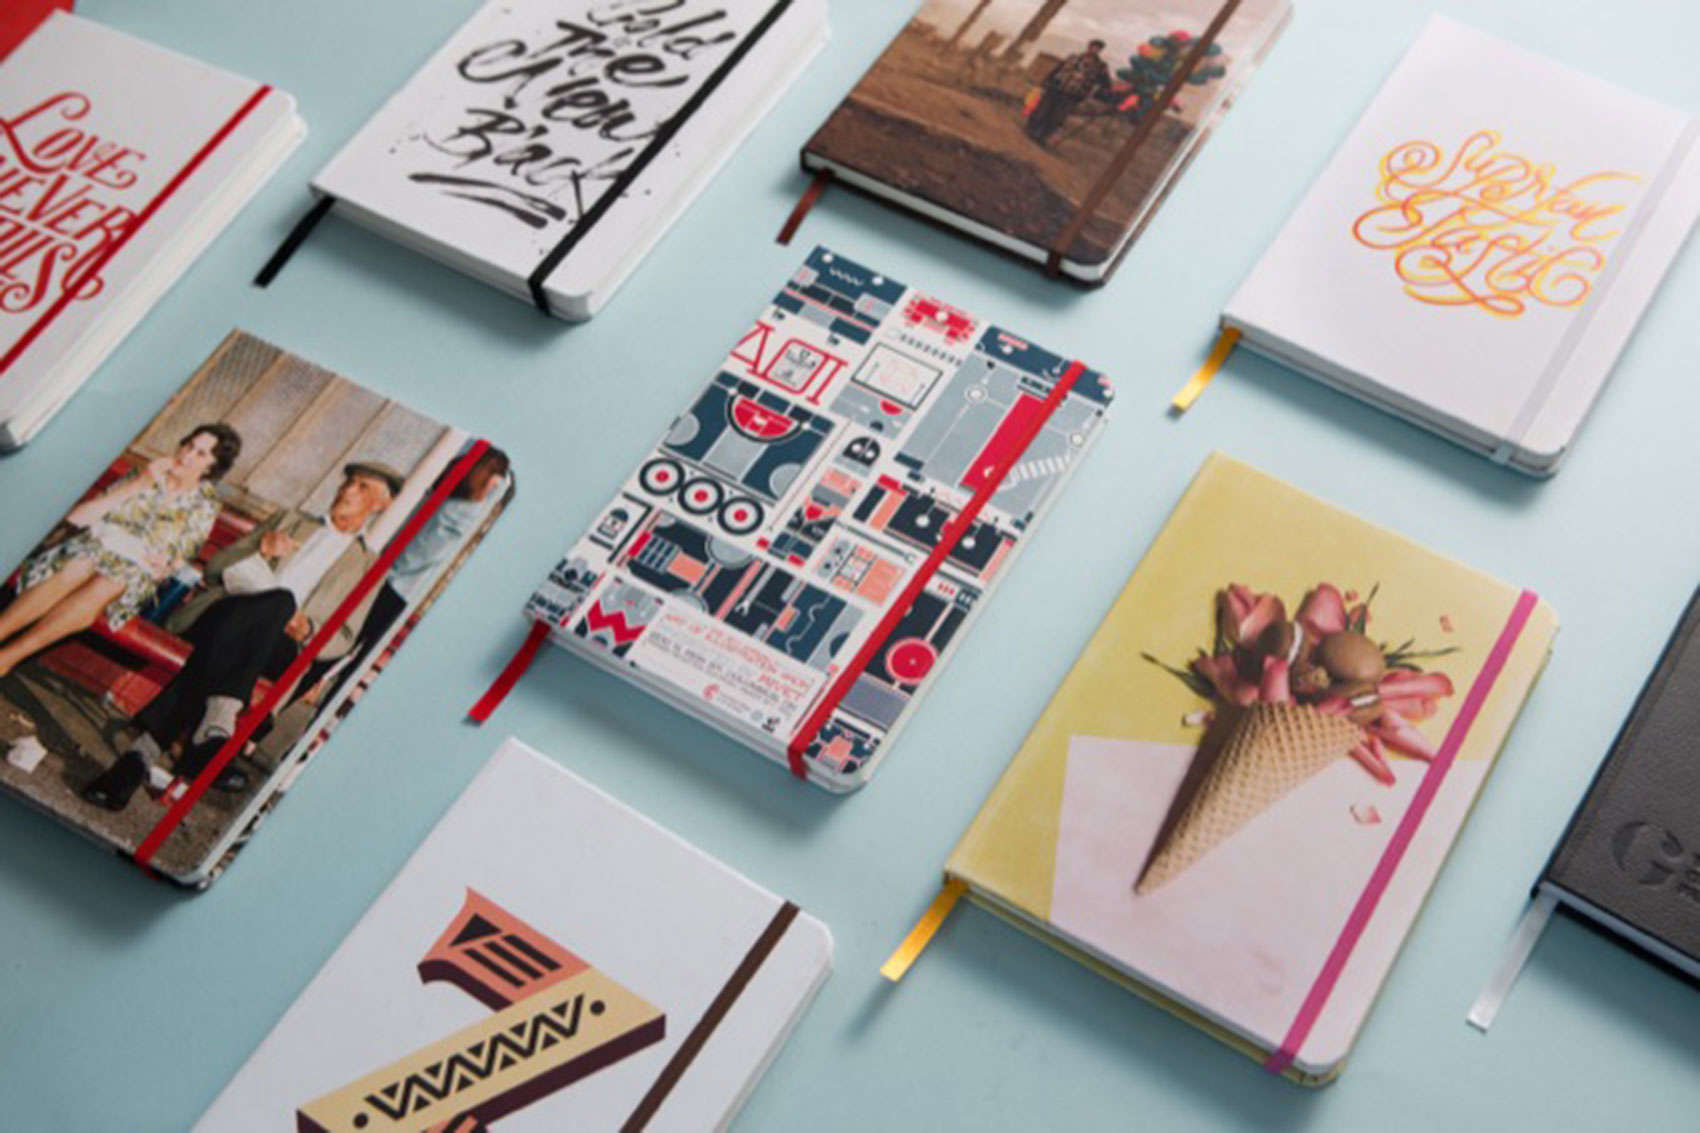 Custom design your own notebooks with Book Block.